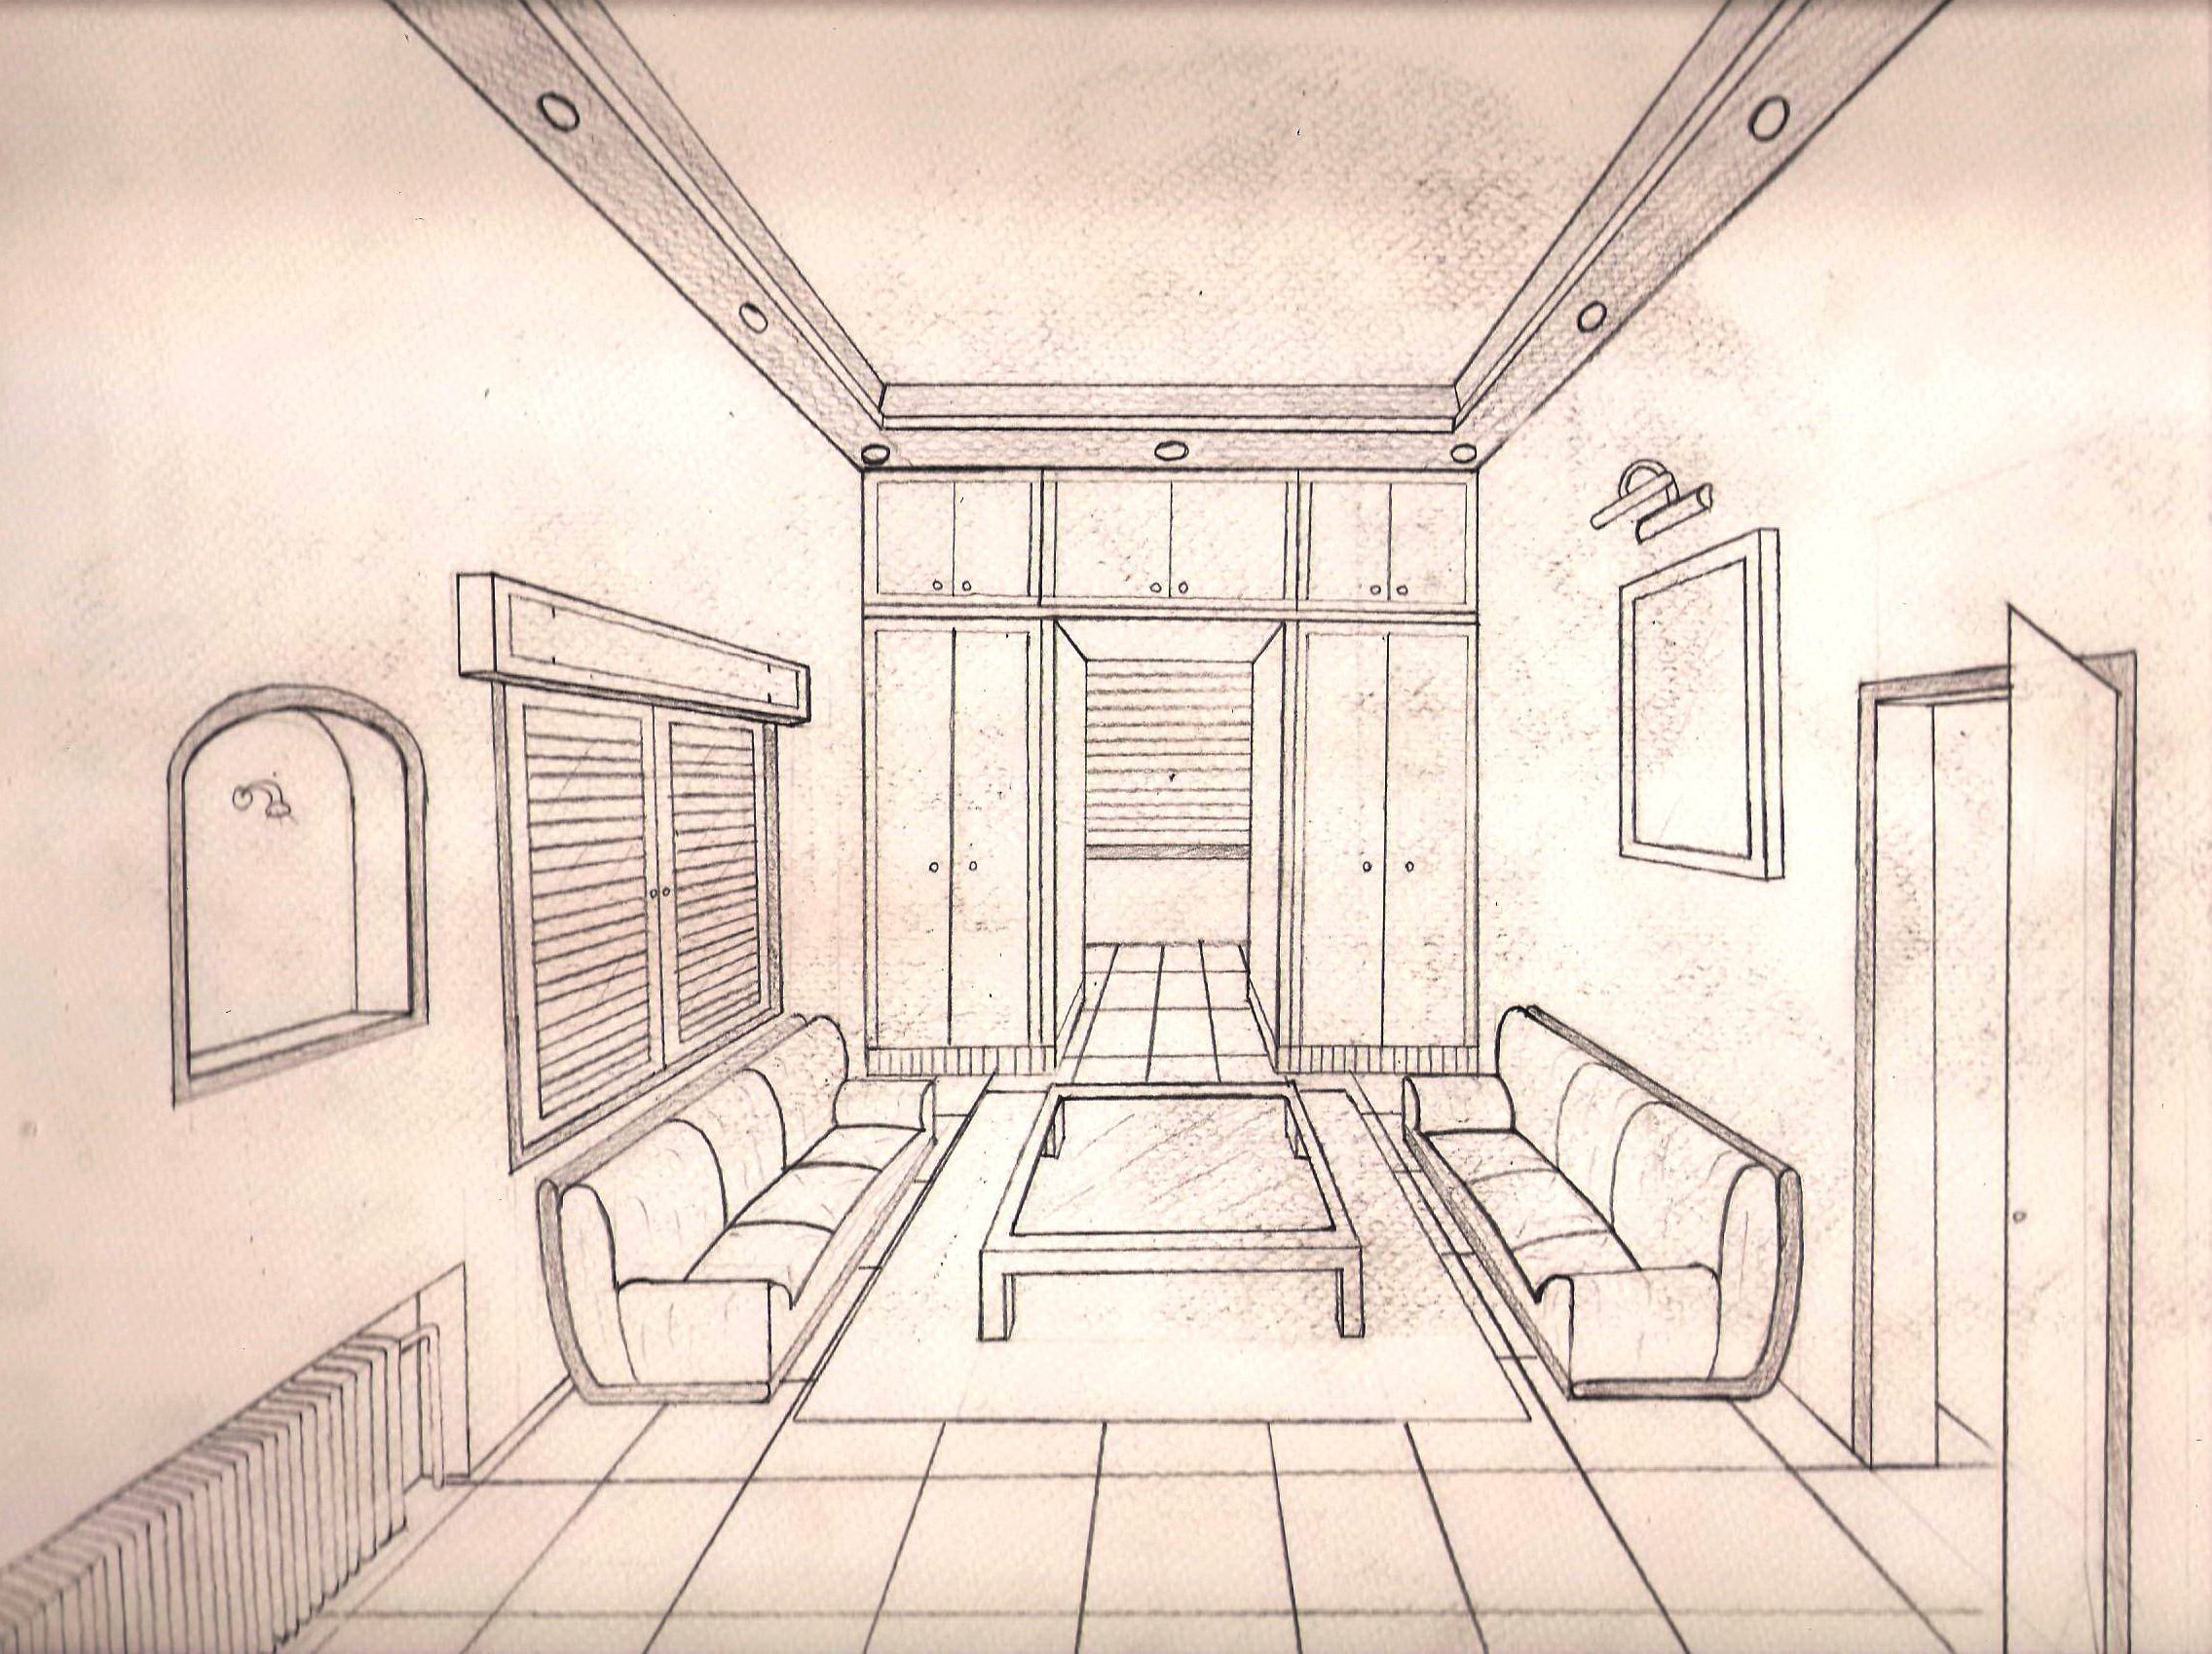 Drawings from preparation of admission to the faculty of for Architecture modern house design 2 point perspective view